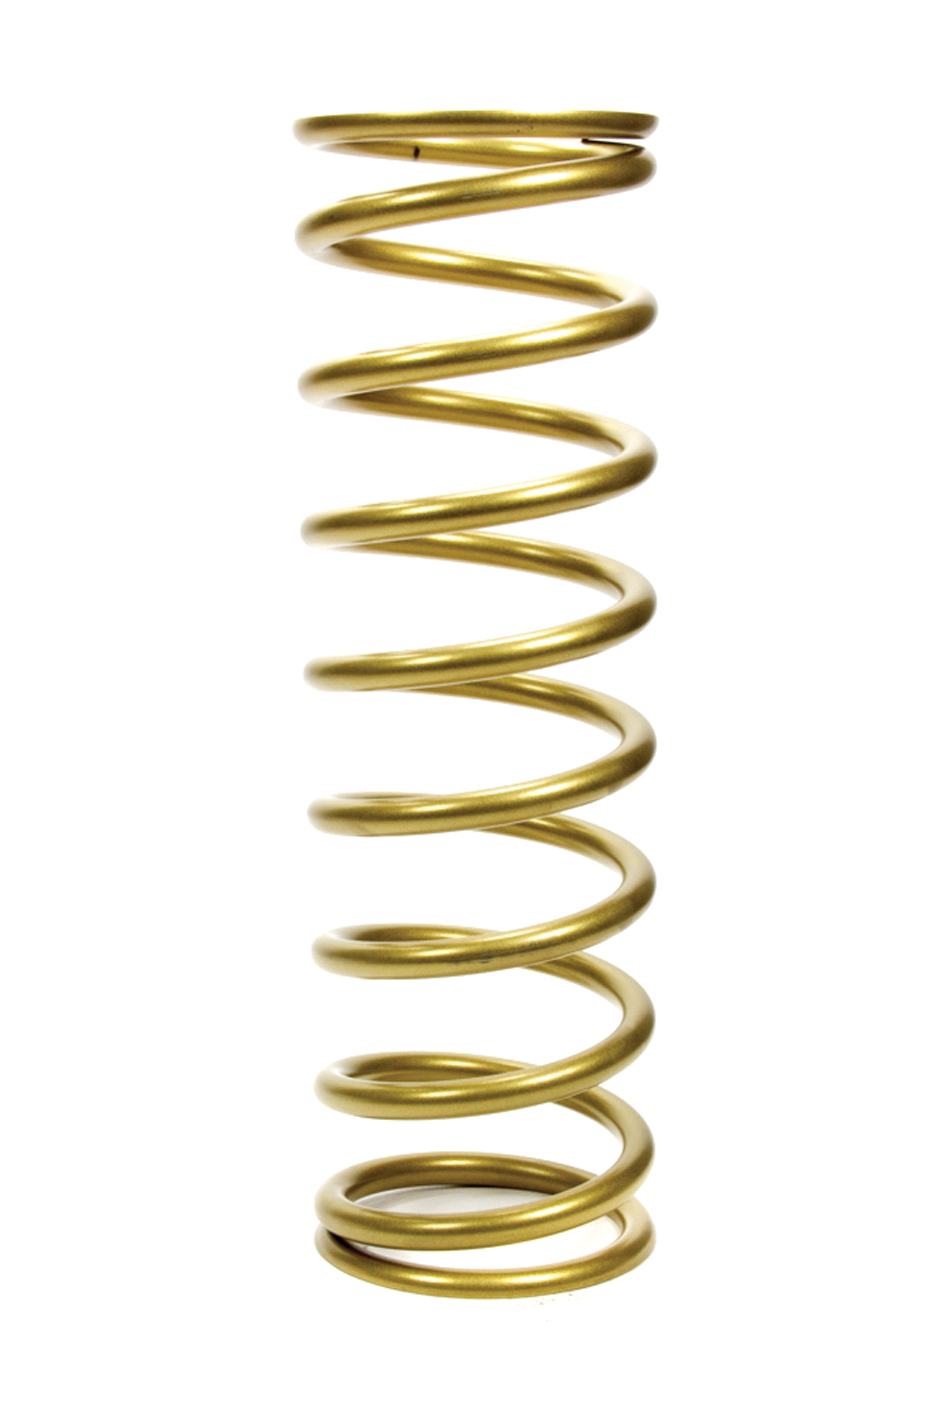 Landrum Springs K16-075 Coil Spring, Conventional, 5.0 in OD, 16.000 in Length, 75 lb/in Spring Rate, Rear, Gold Powder Coat, Each